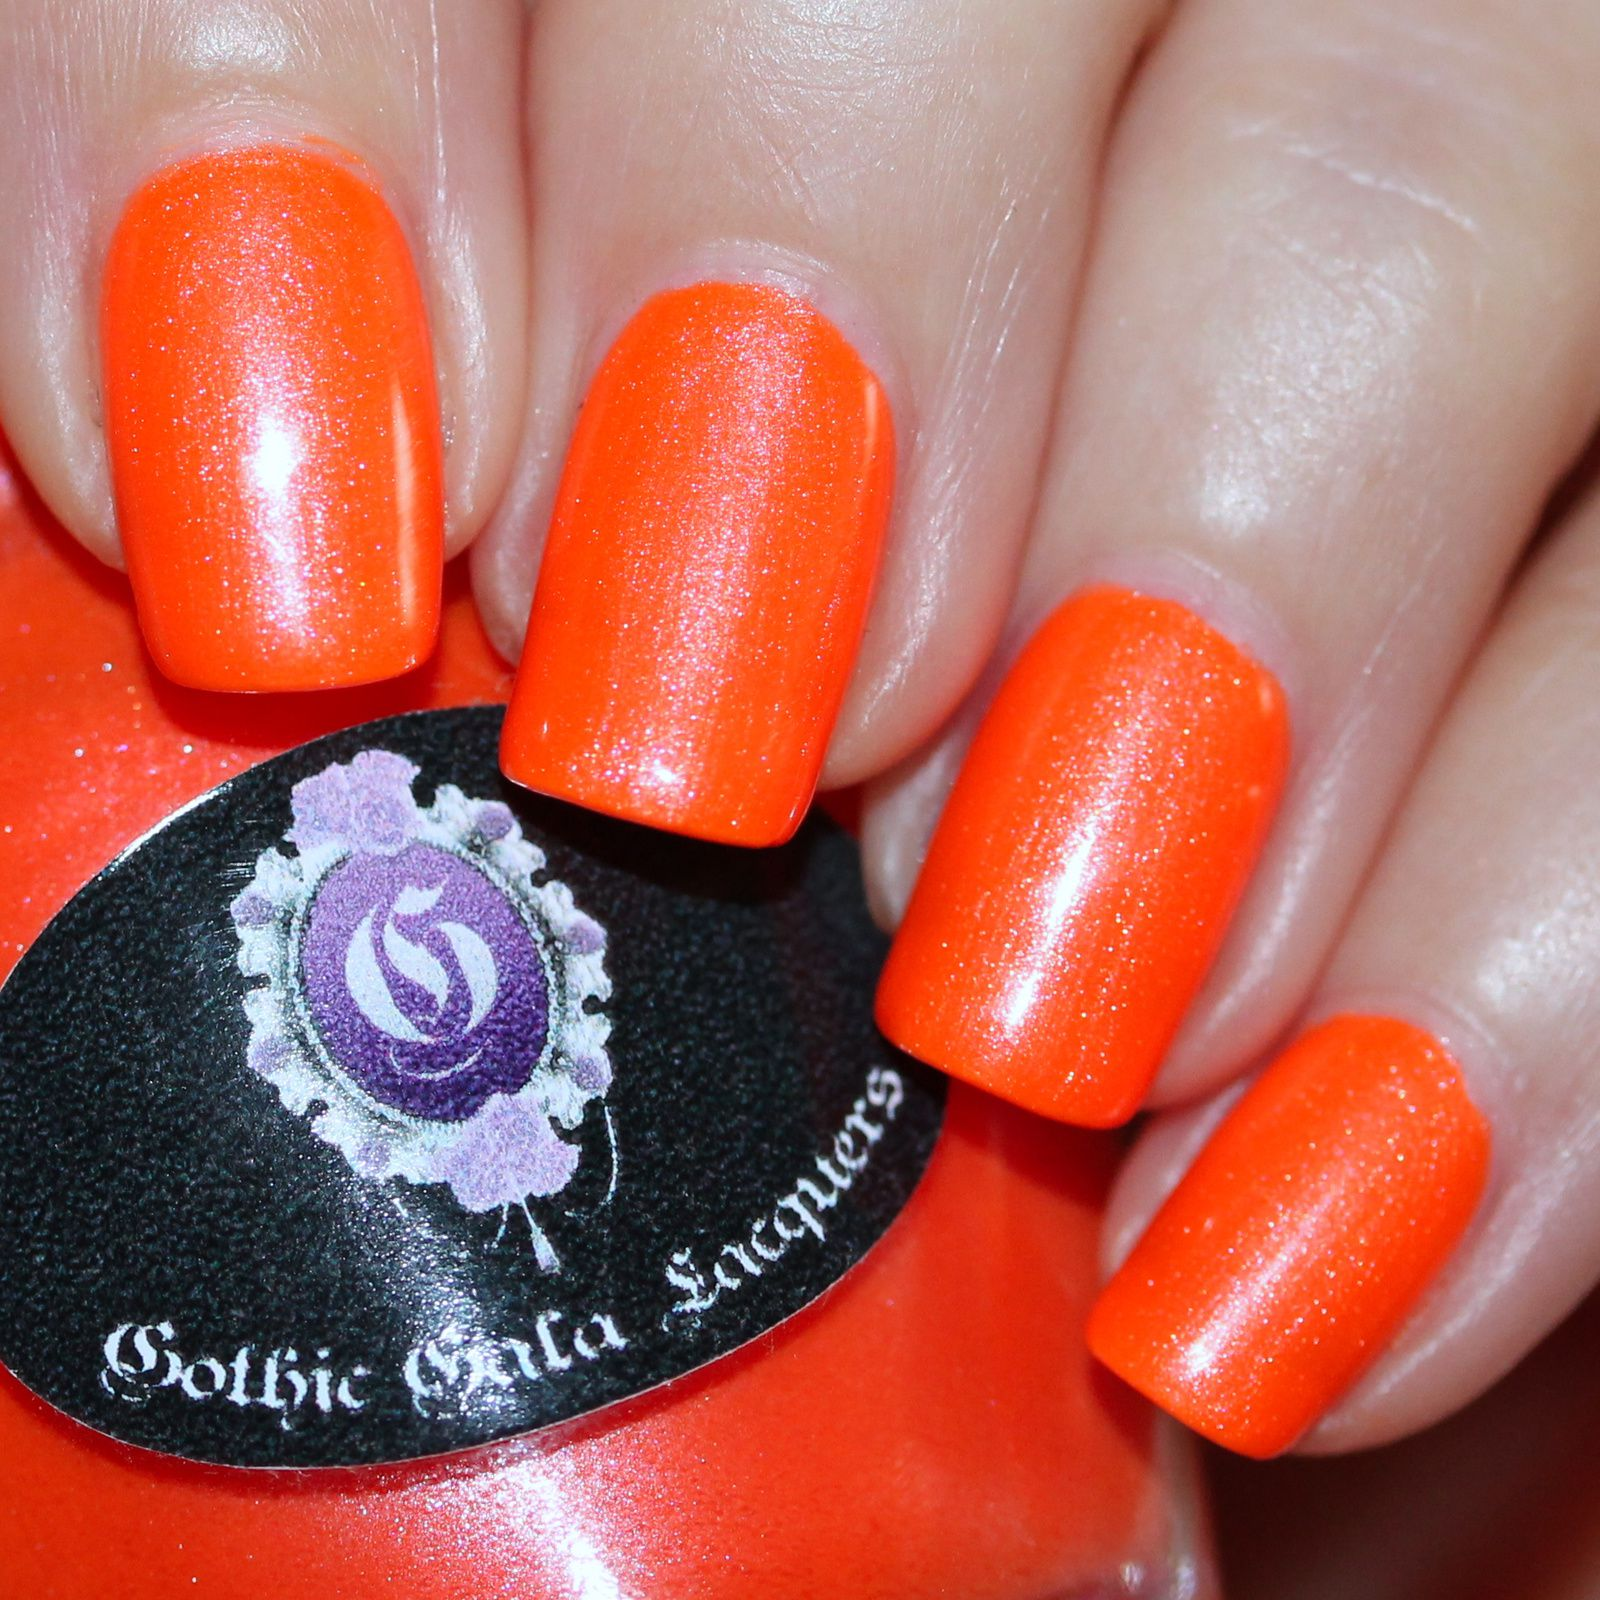 Duri Rejuvacote / Gothic Gala Lacquers Orange Crush / HK Girl Top Coat